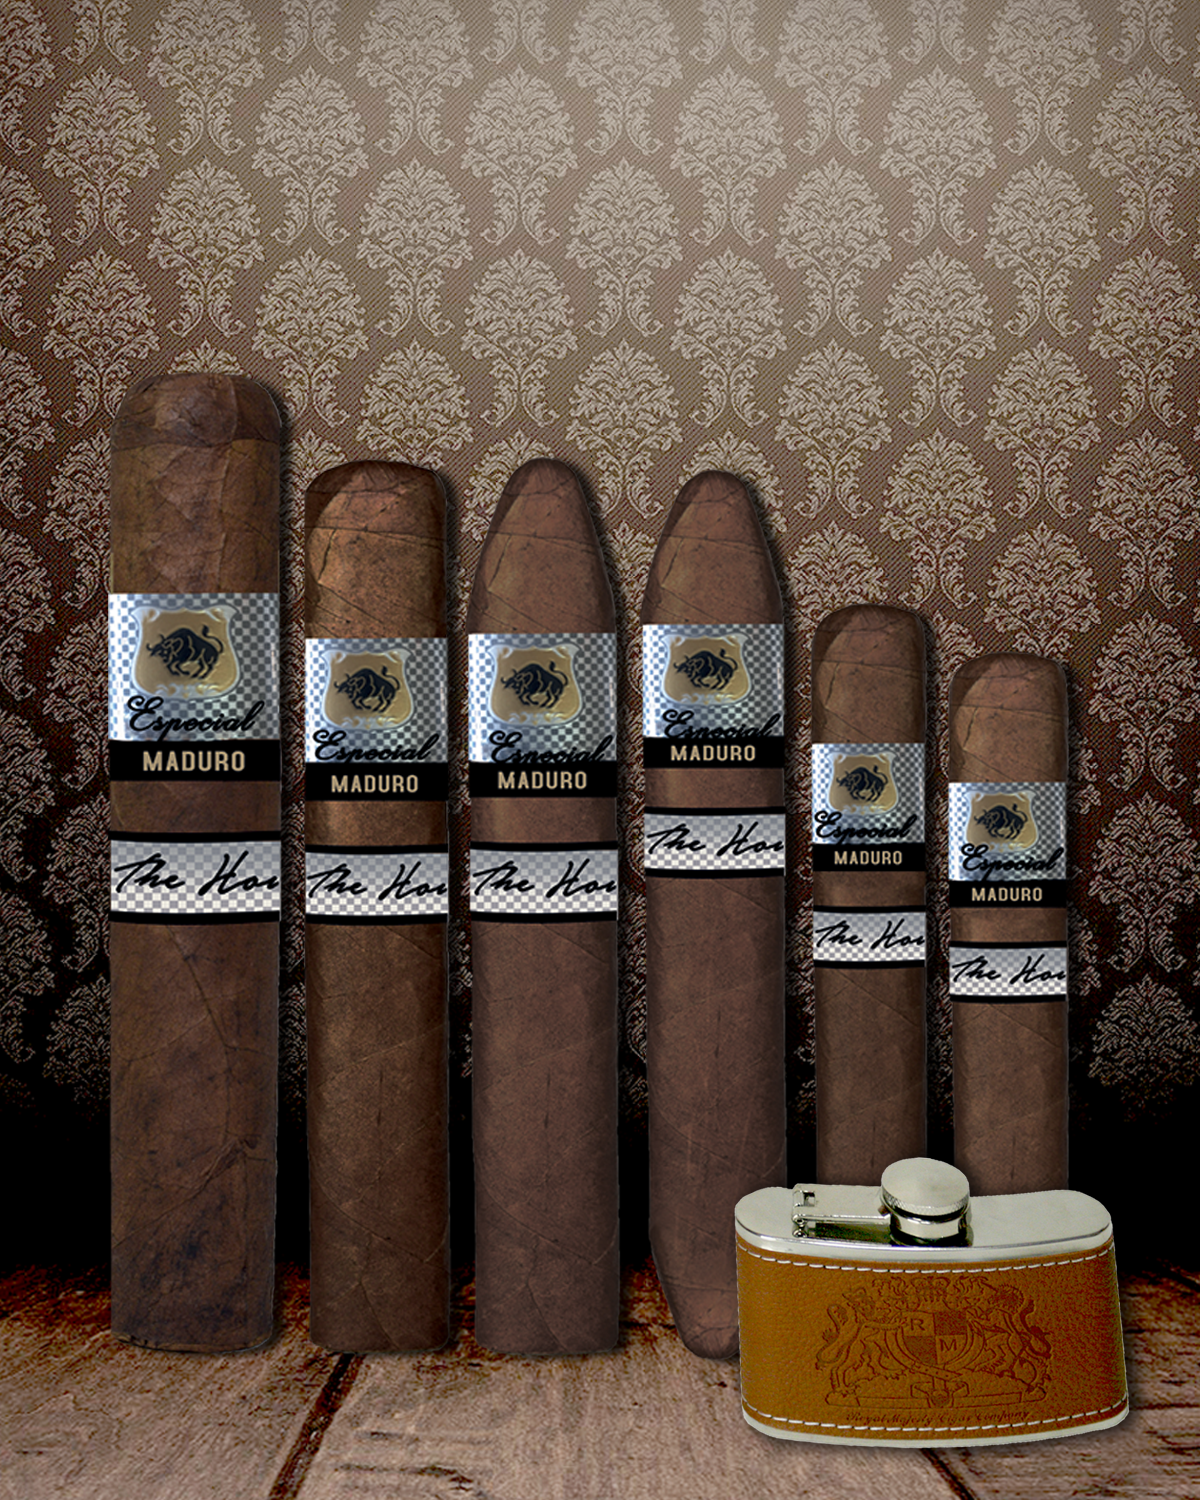 Holiday Especial Maduro 6 Piece Sampler + Free Gift Stainless Steel Flask